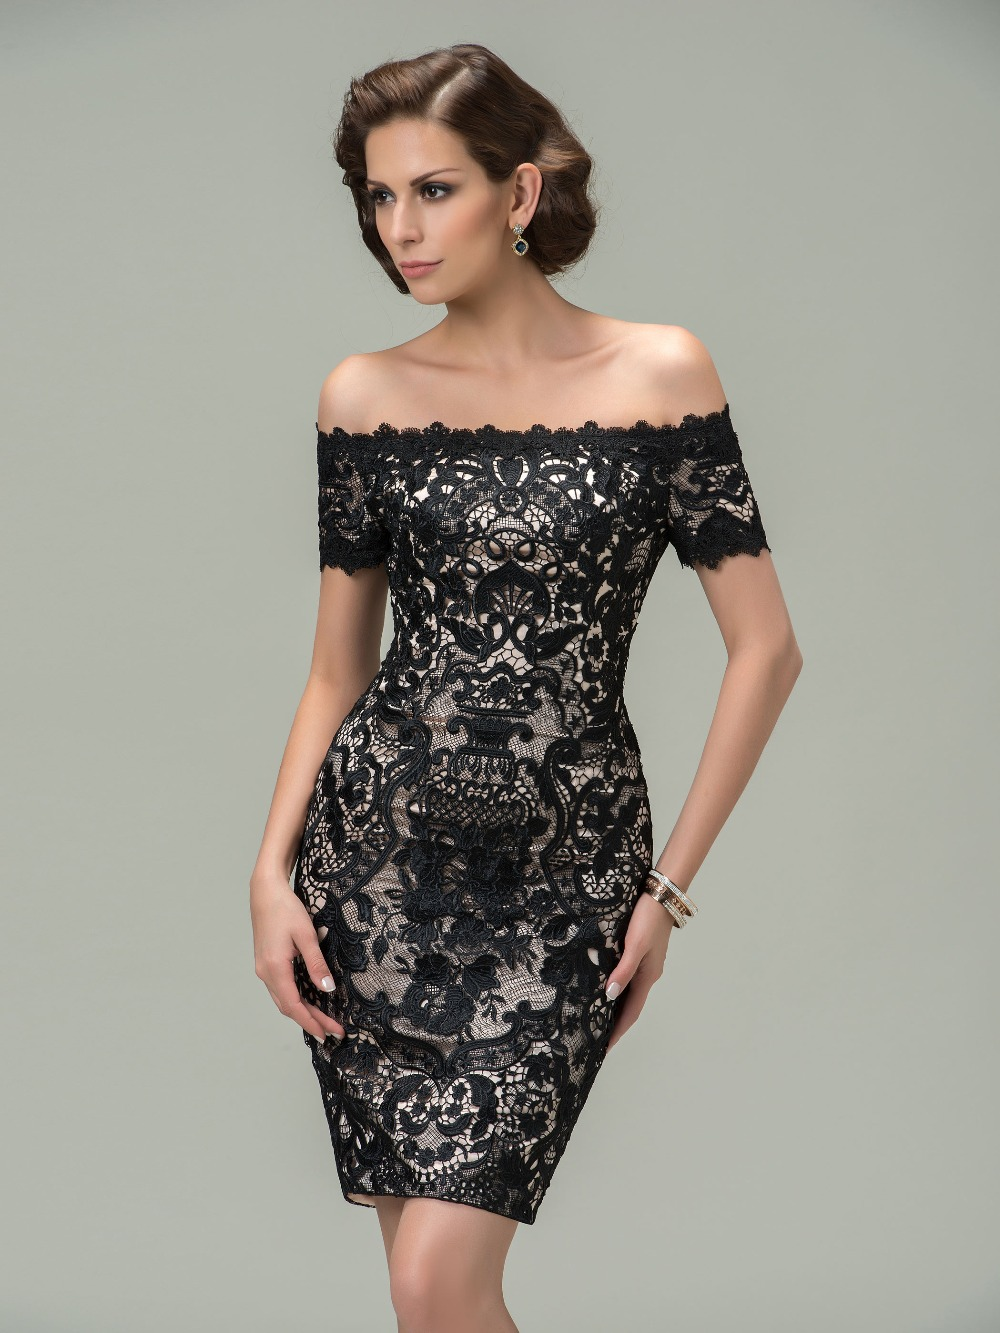 Aliexpress.com : Buy Hot Trendy Short Black Lace Cocktail Dresses ...